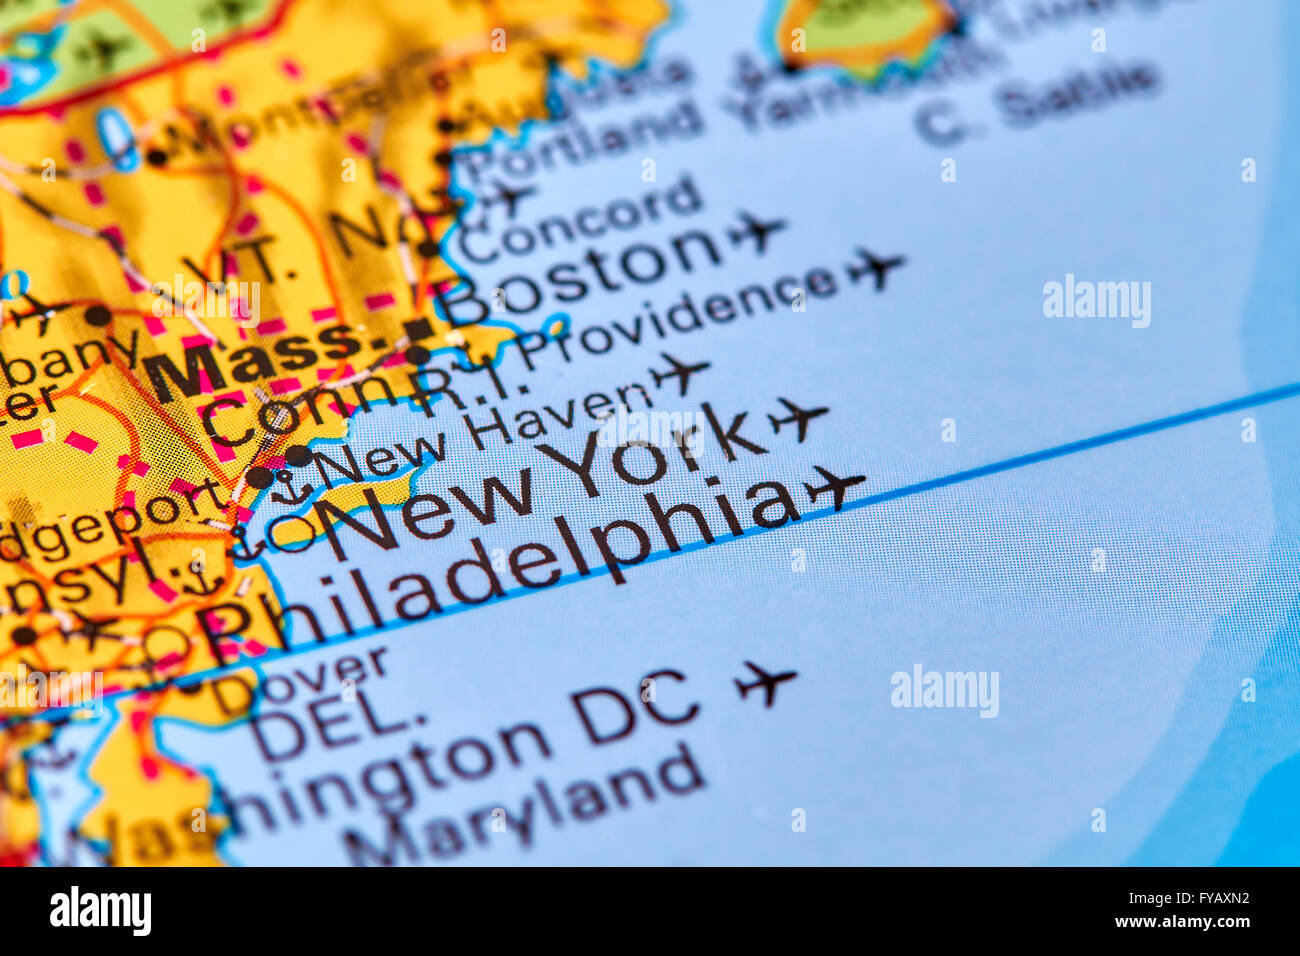 New York City In Usa On The World Map Stock Photo 102888046 Alamy